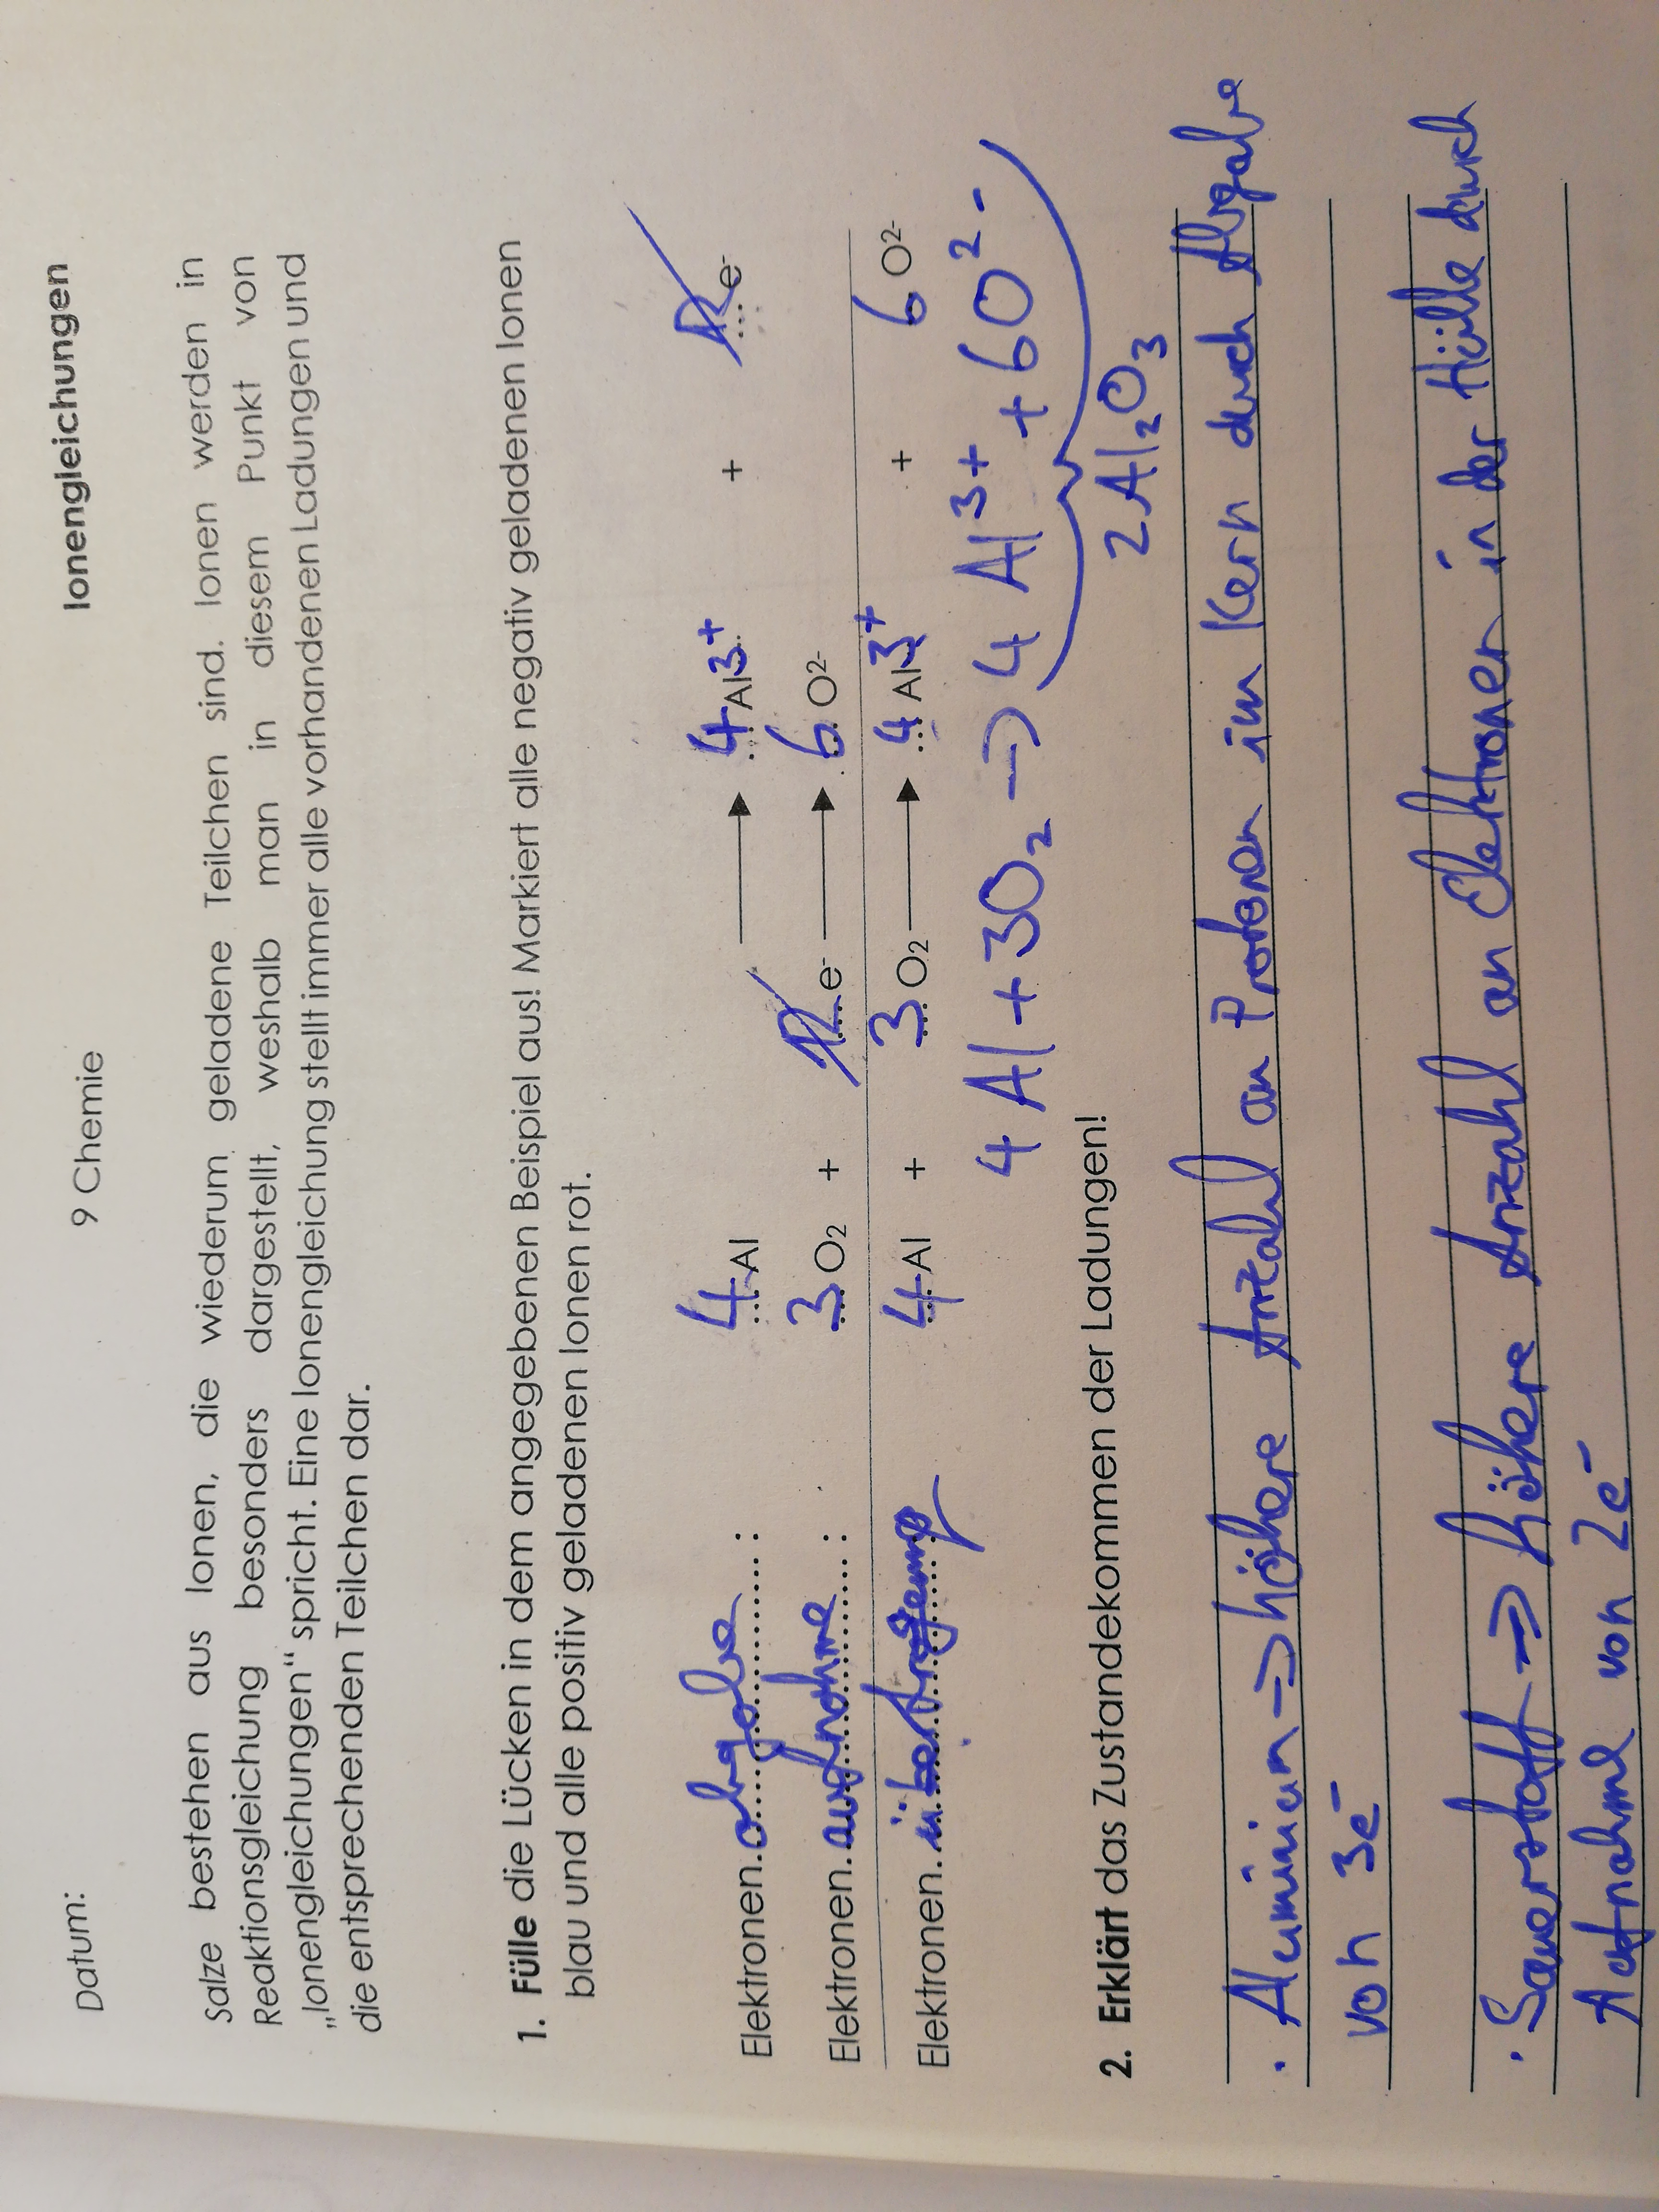 Ionengleichung in Chemie?